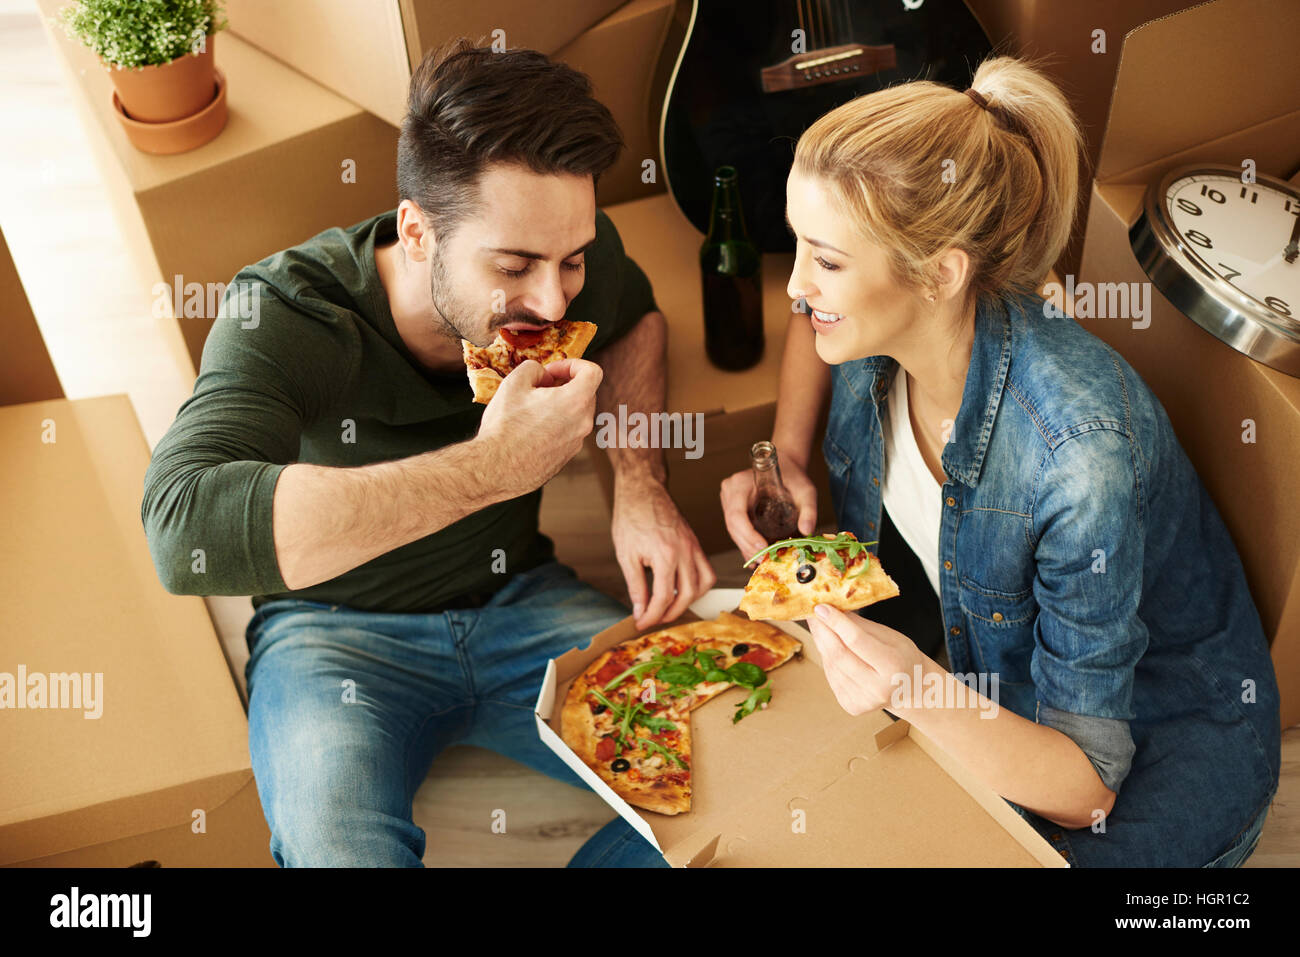 Couple moving house eating pizza - Stock Image